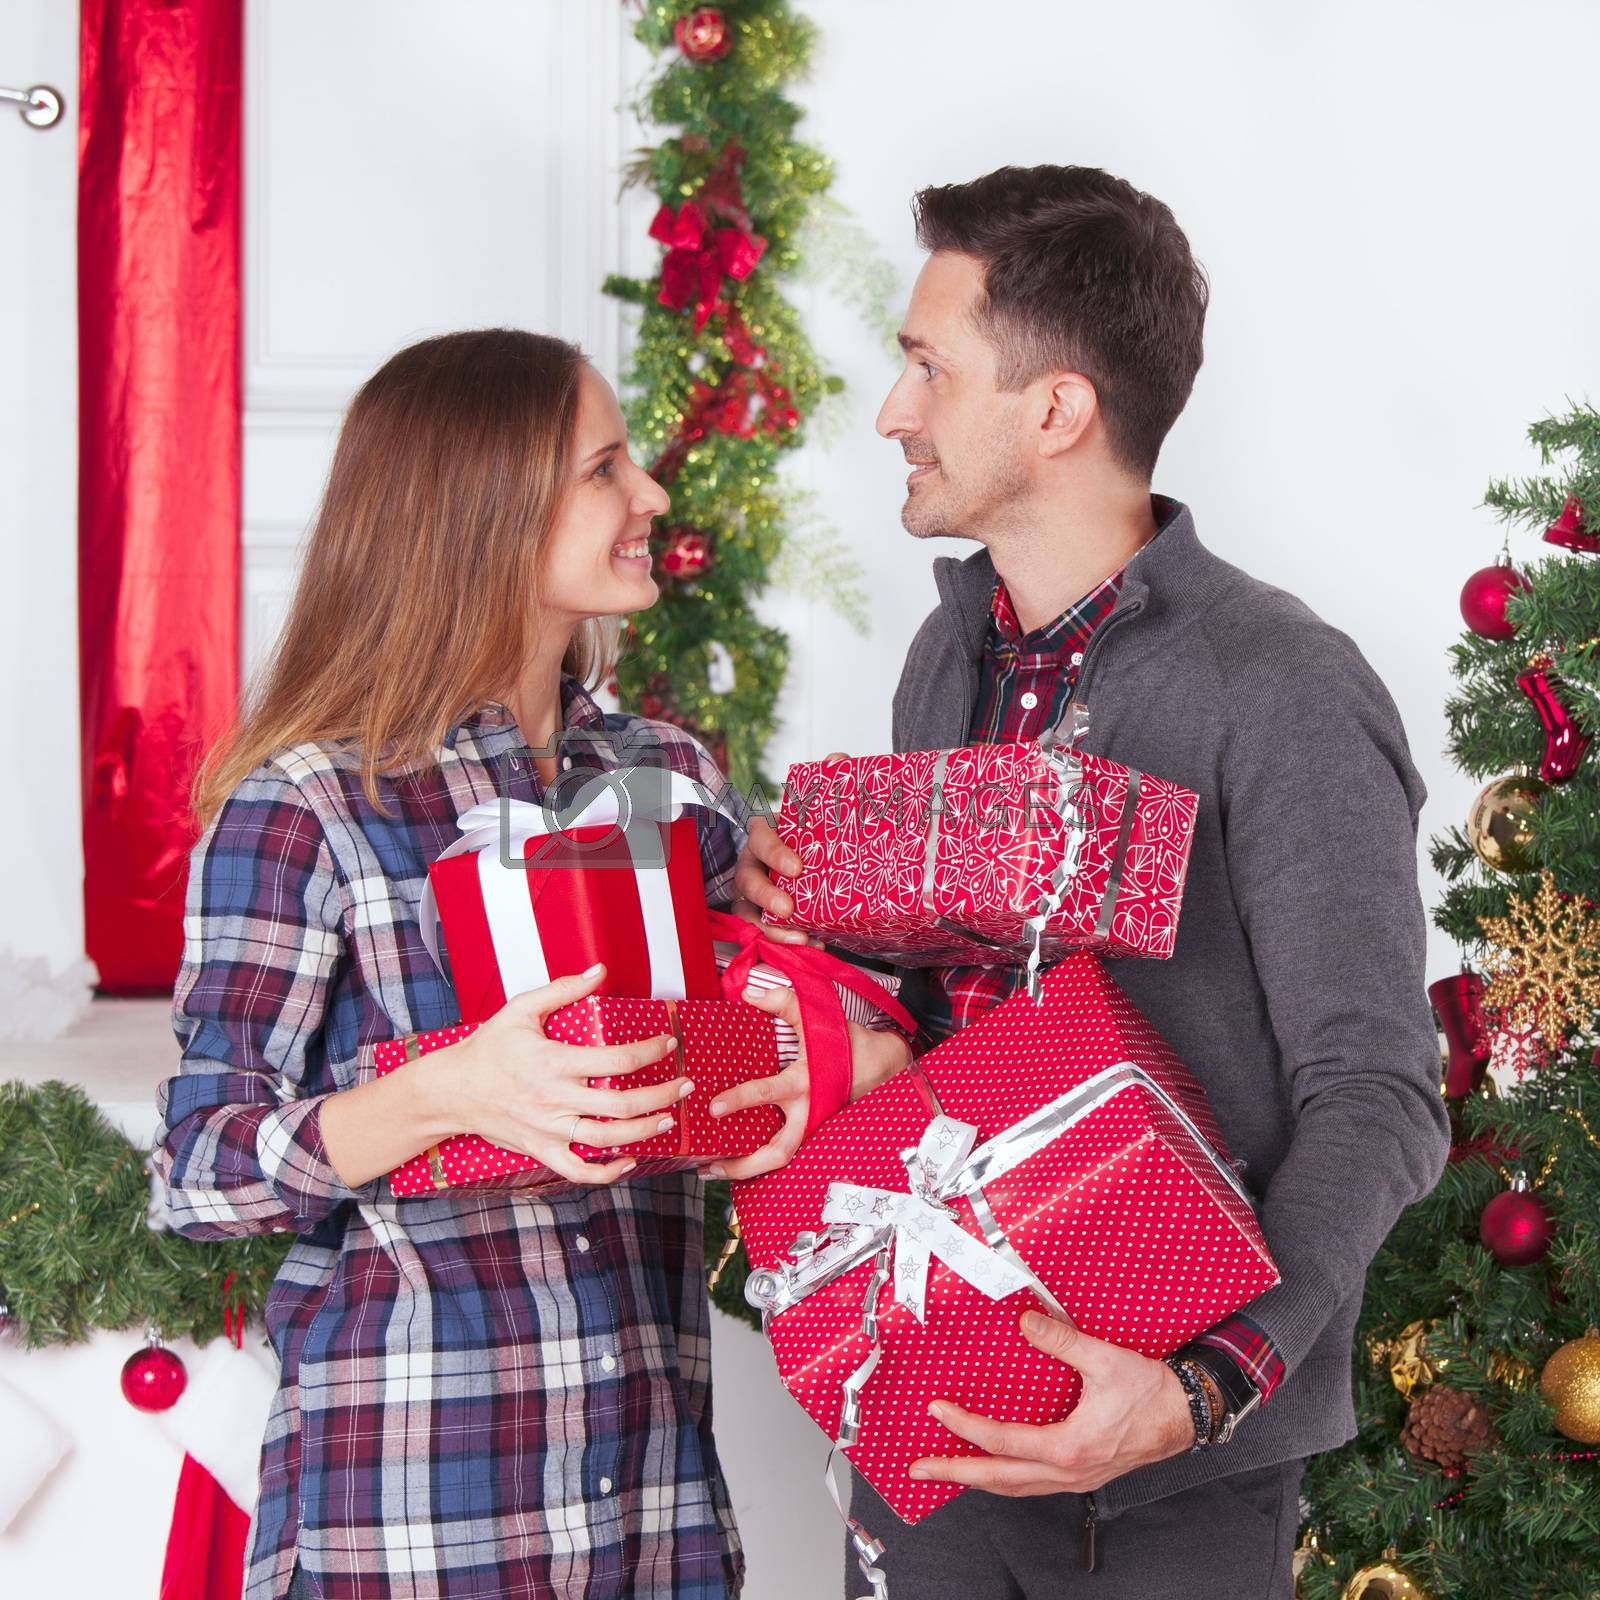 Couple in love sitting next to a nicely decorated Christmas tree, hloding Christmas gifts and smiling